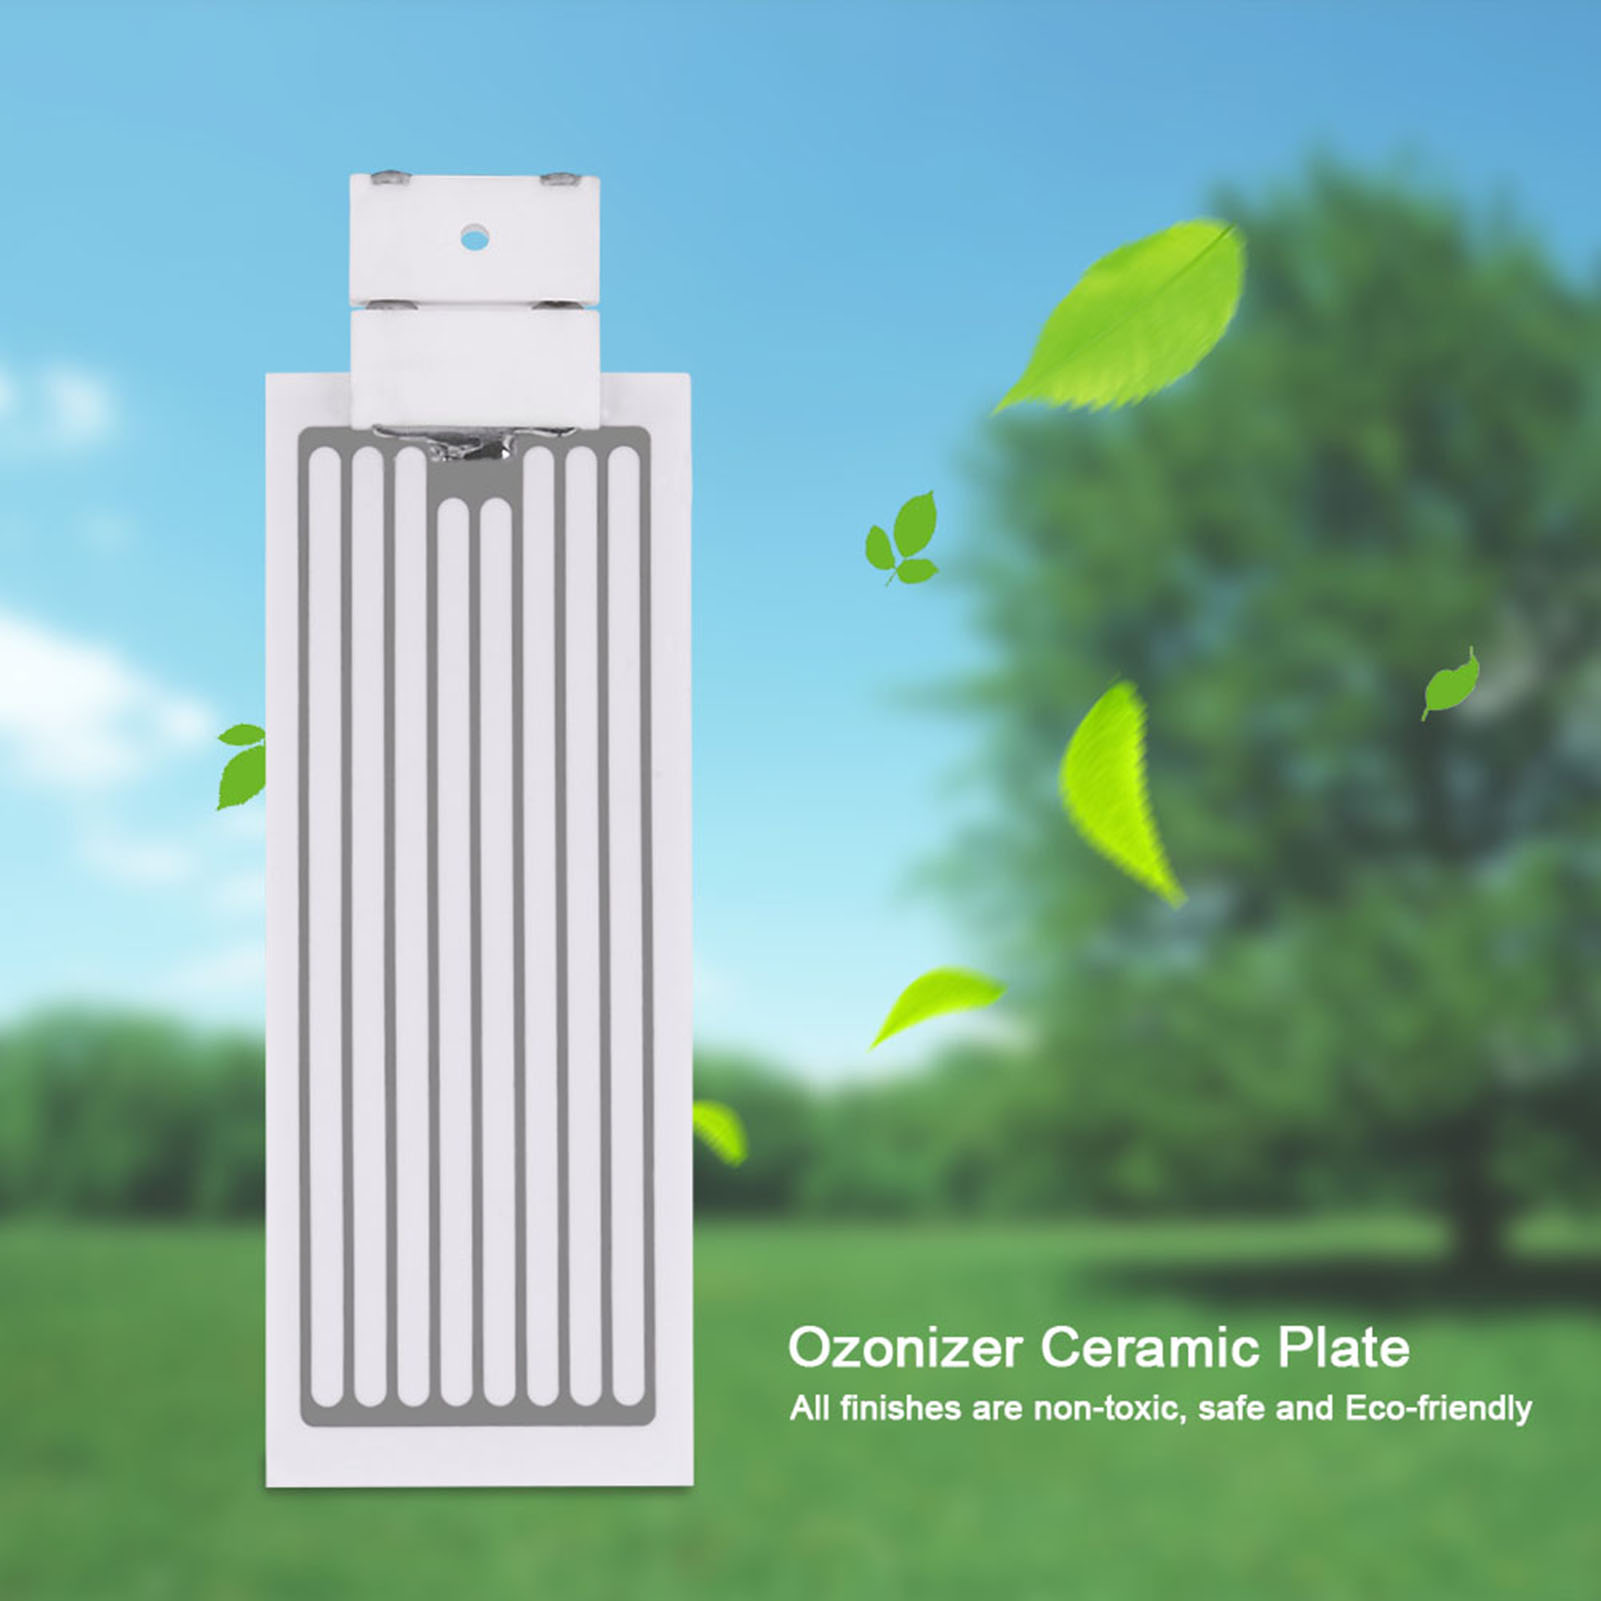 Ceramic-Plate-With-Ceramic-Base-For-10000-Hours-3-5g-5g-10g-Ozone-Generator-New thumbnail 17